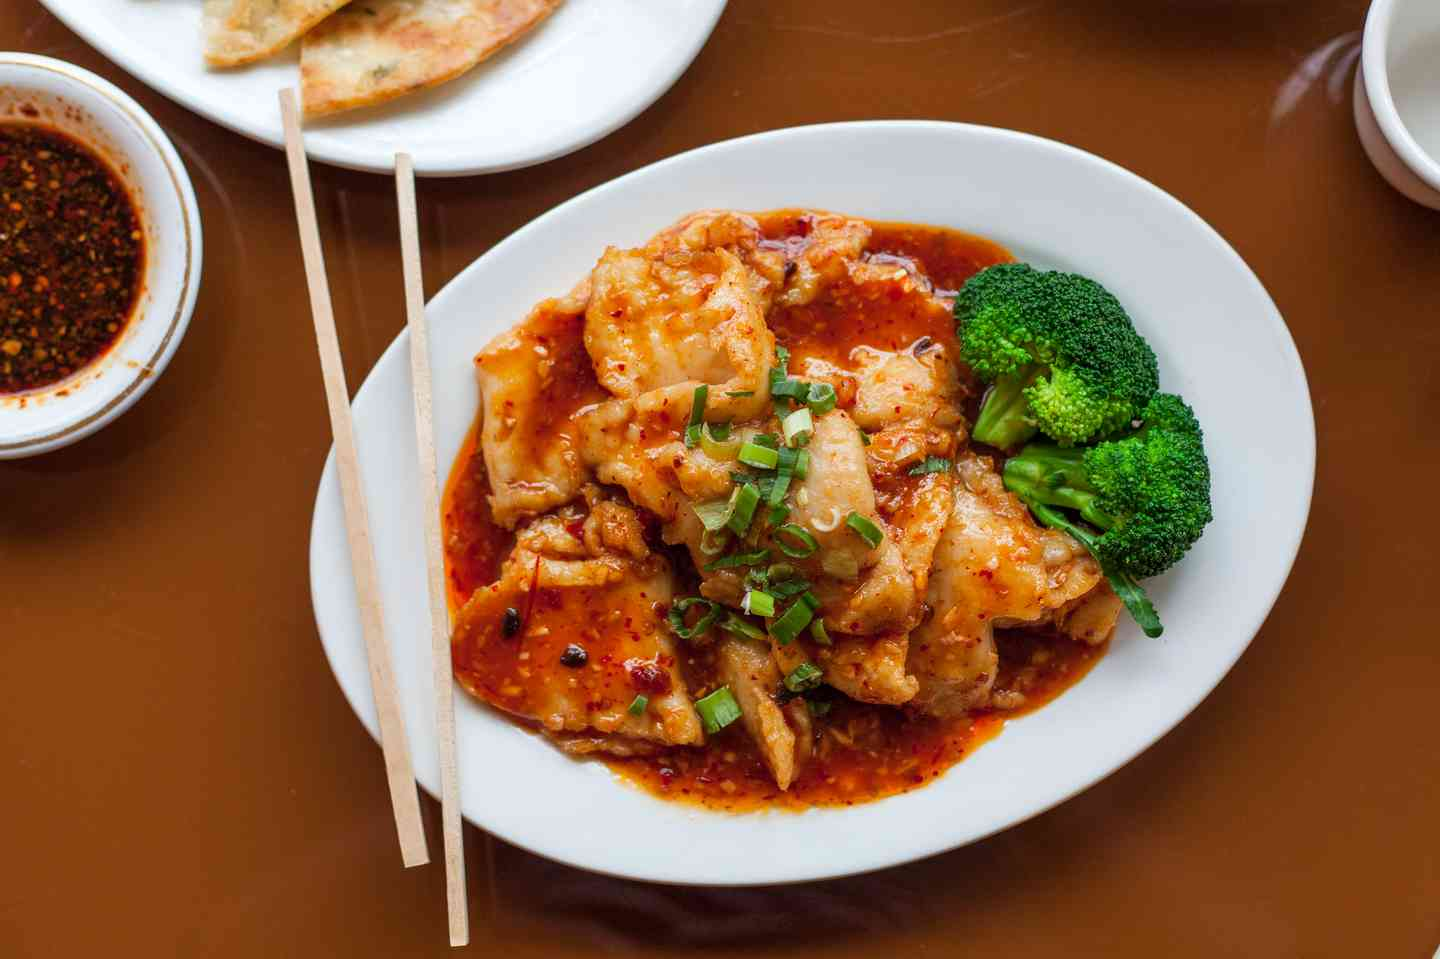 Fish in Chili Oil